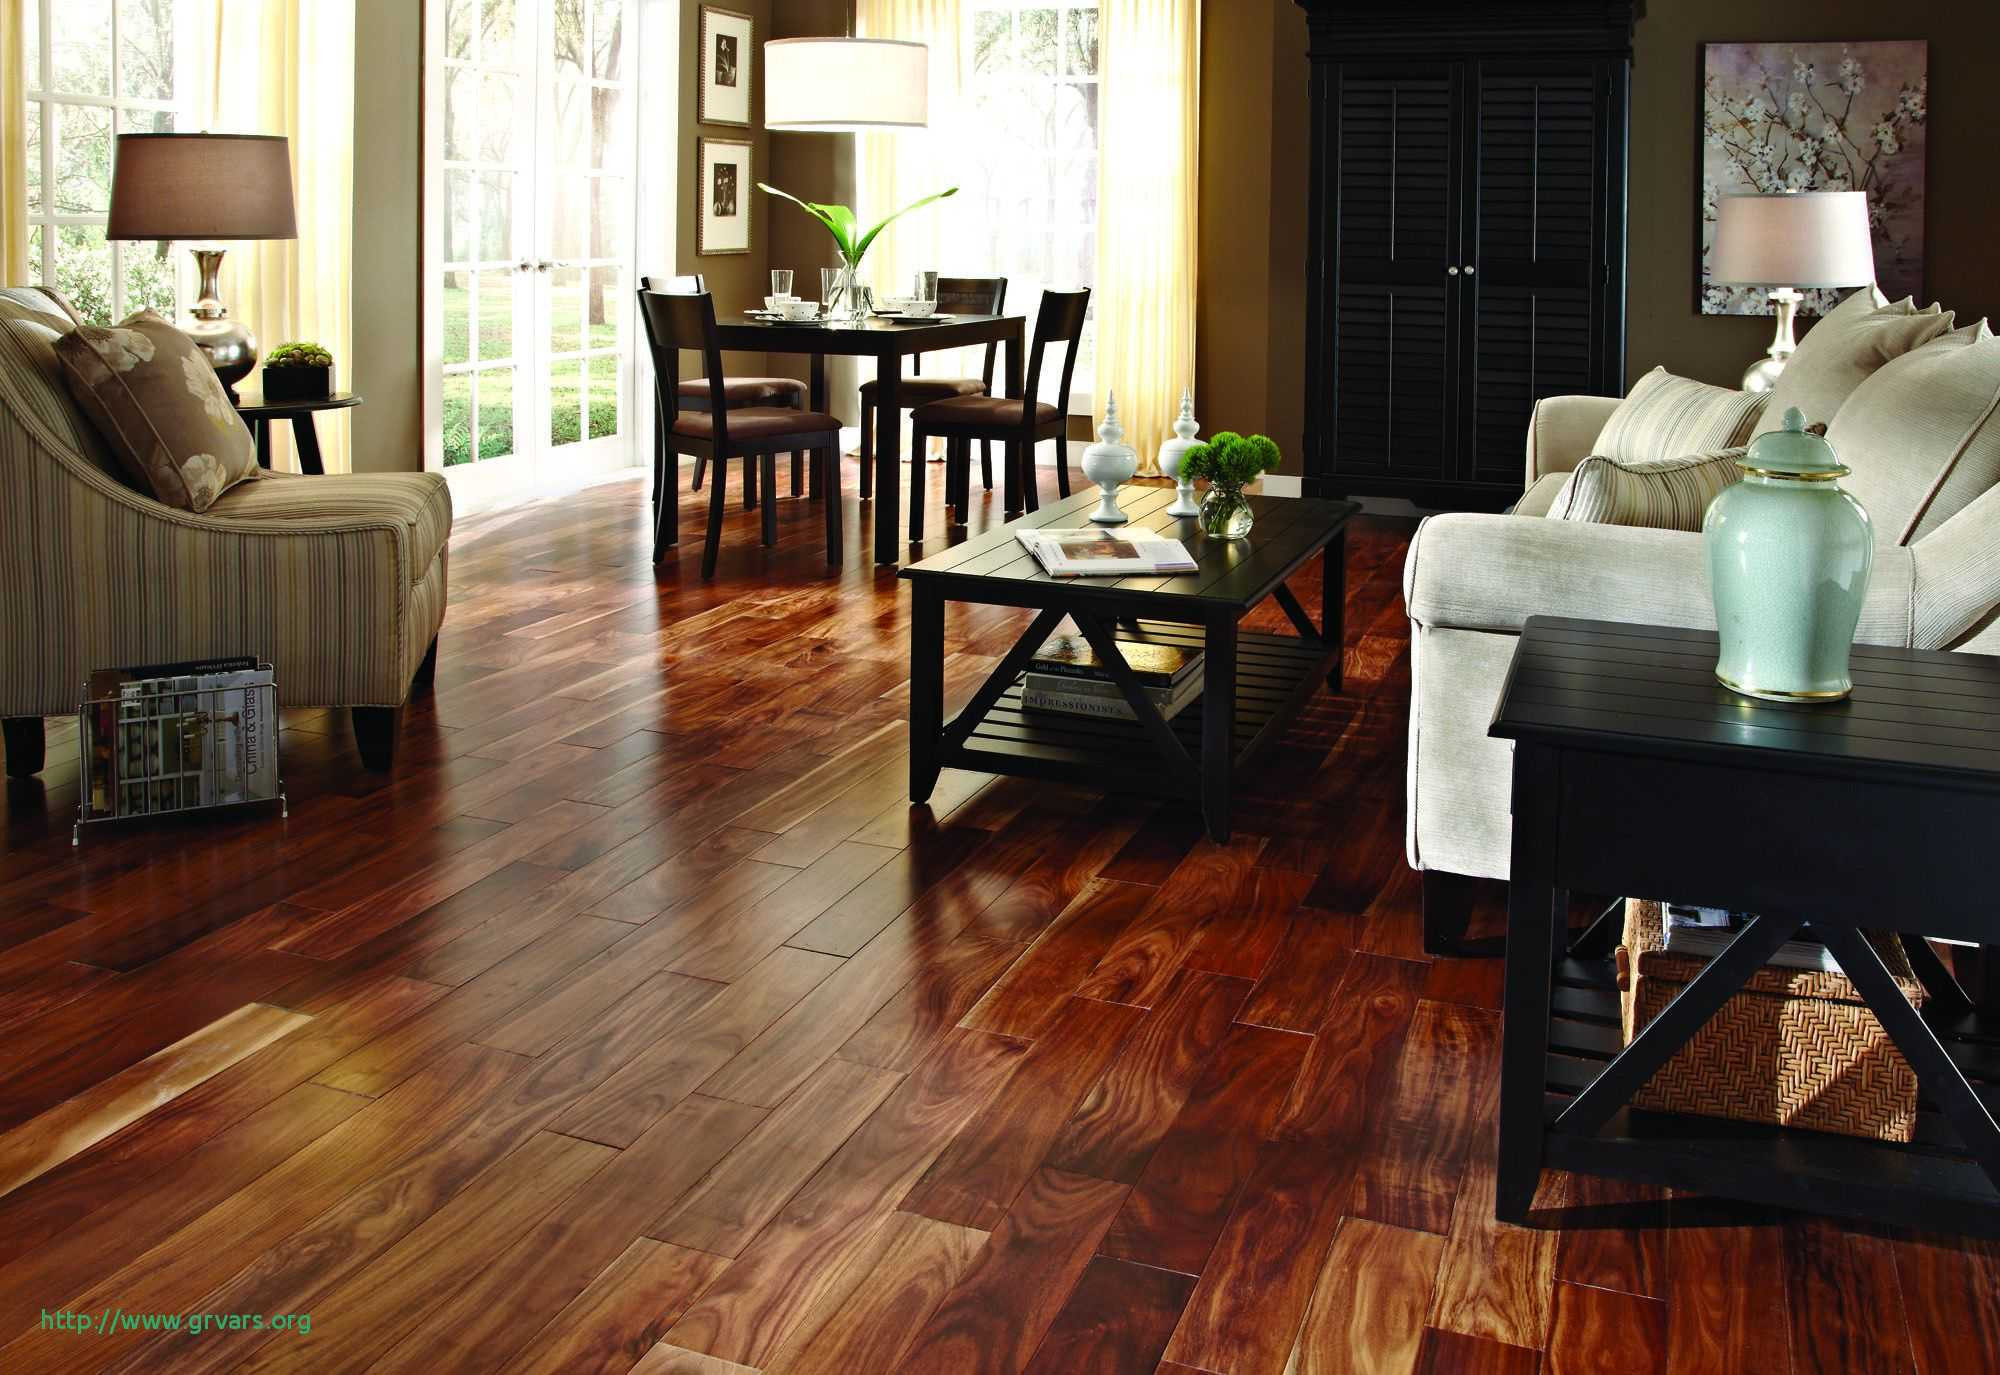 hardwood flooring cost bay area of 25 charmant does hardwood floors increase home value ideas blog with regard to does hardwood floors increase home value unique hardwood floors are the top choice for adding value